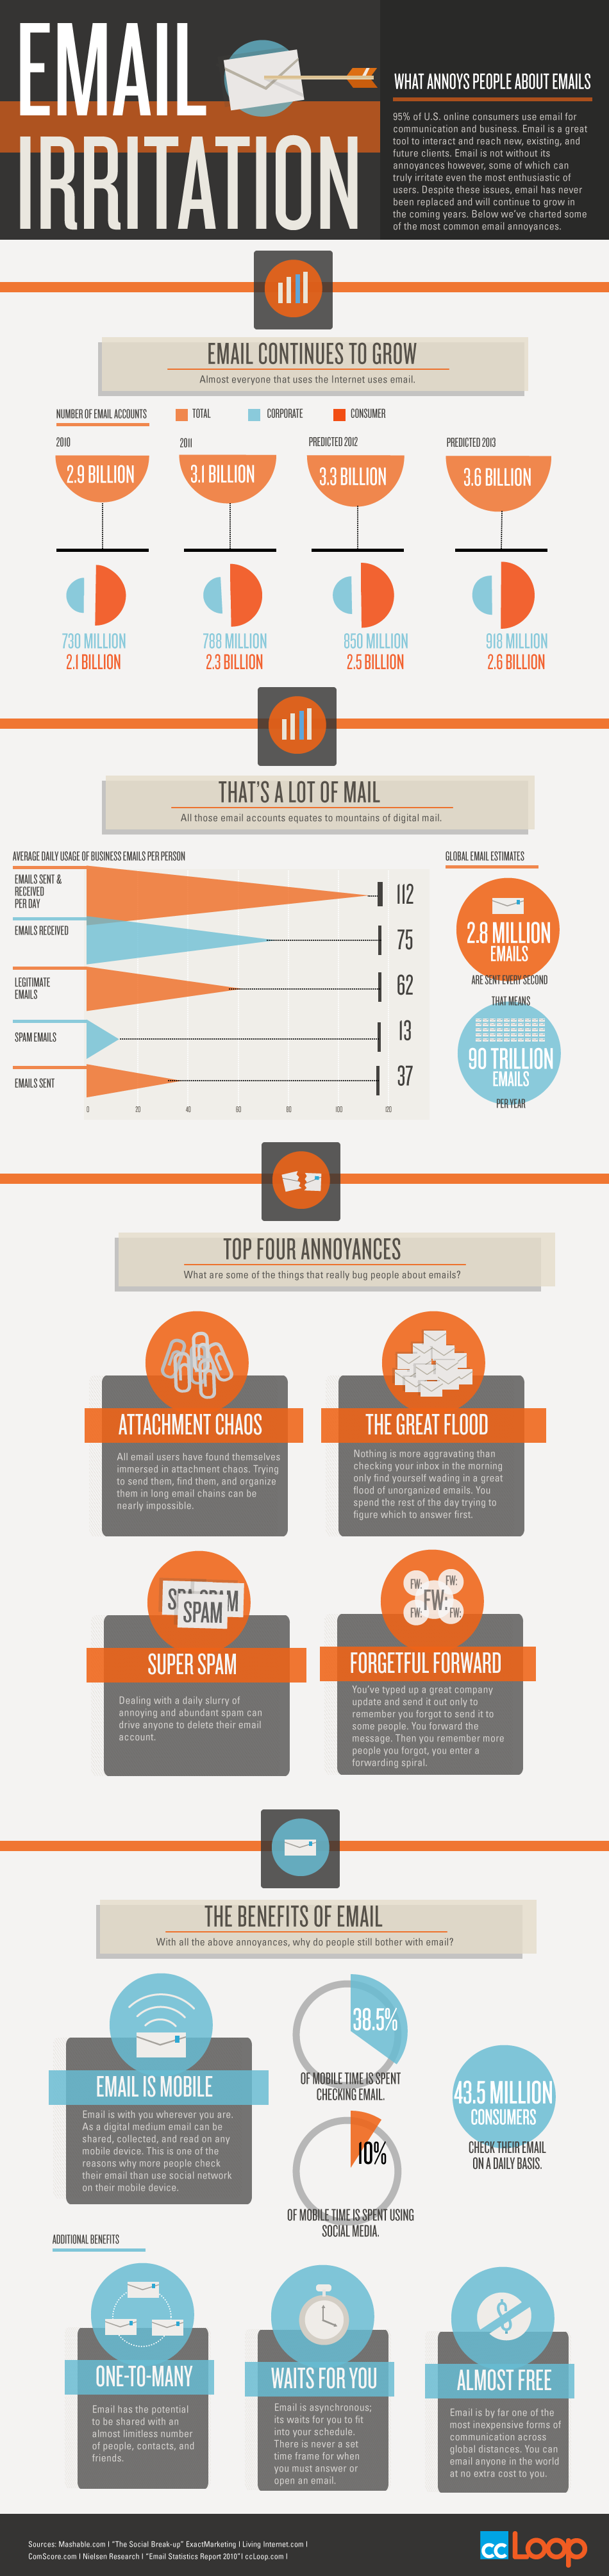 what-annoys-people-about-email-infographic